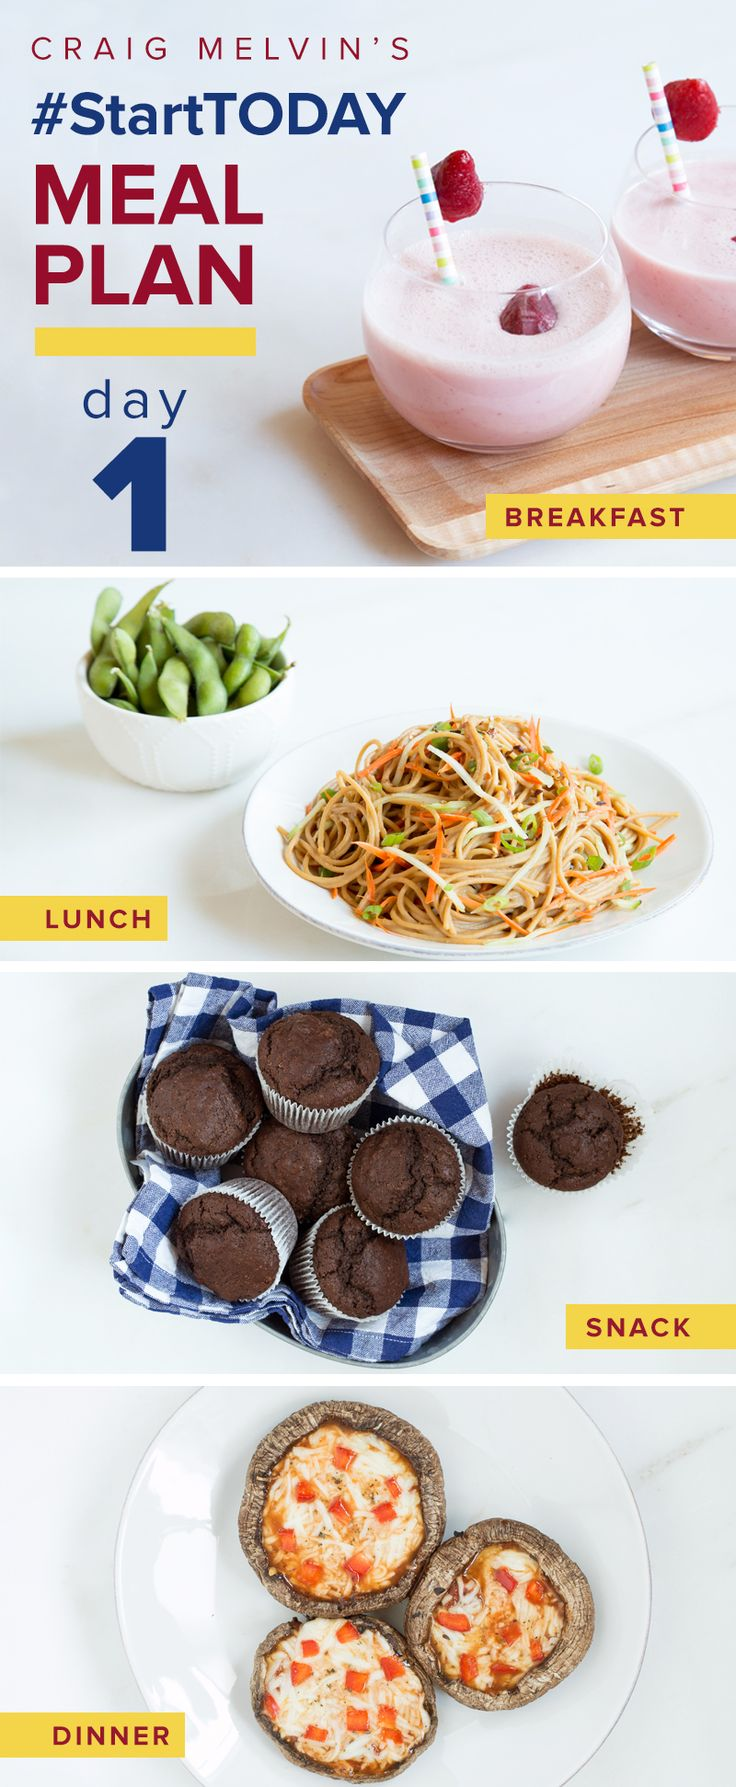 296 best healthy eating images on pinterest healthy eating habits 296 best healthy eating images on pinterest healthy eating habits health foods and healthy eating forumfinder Choice Image